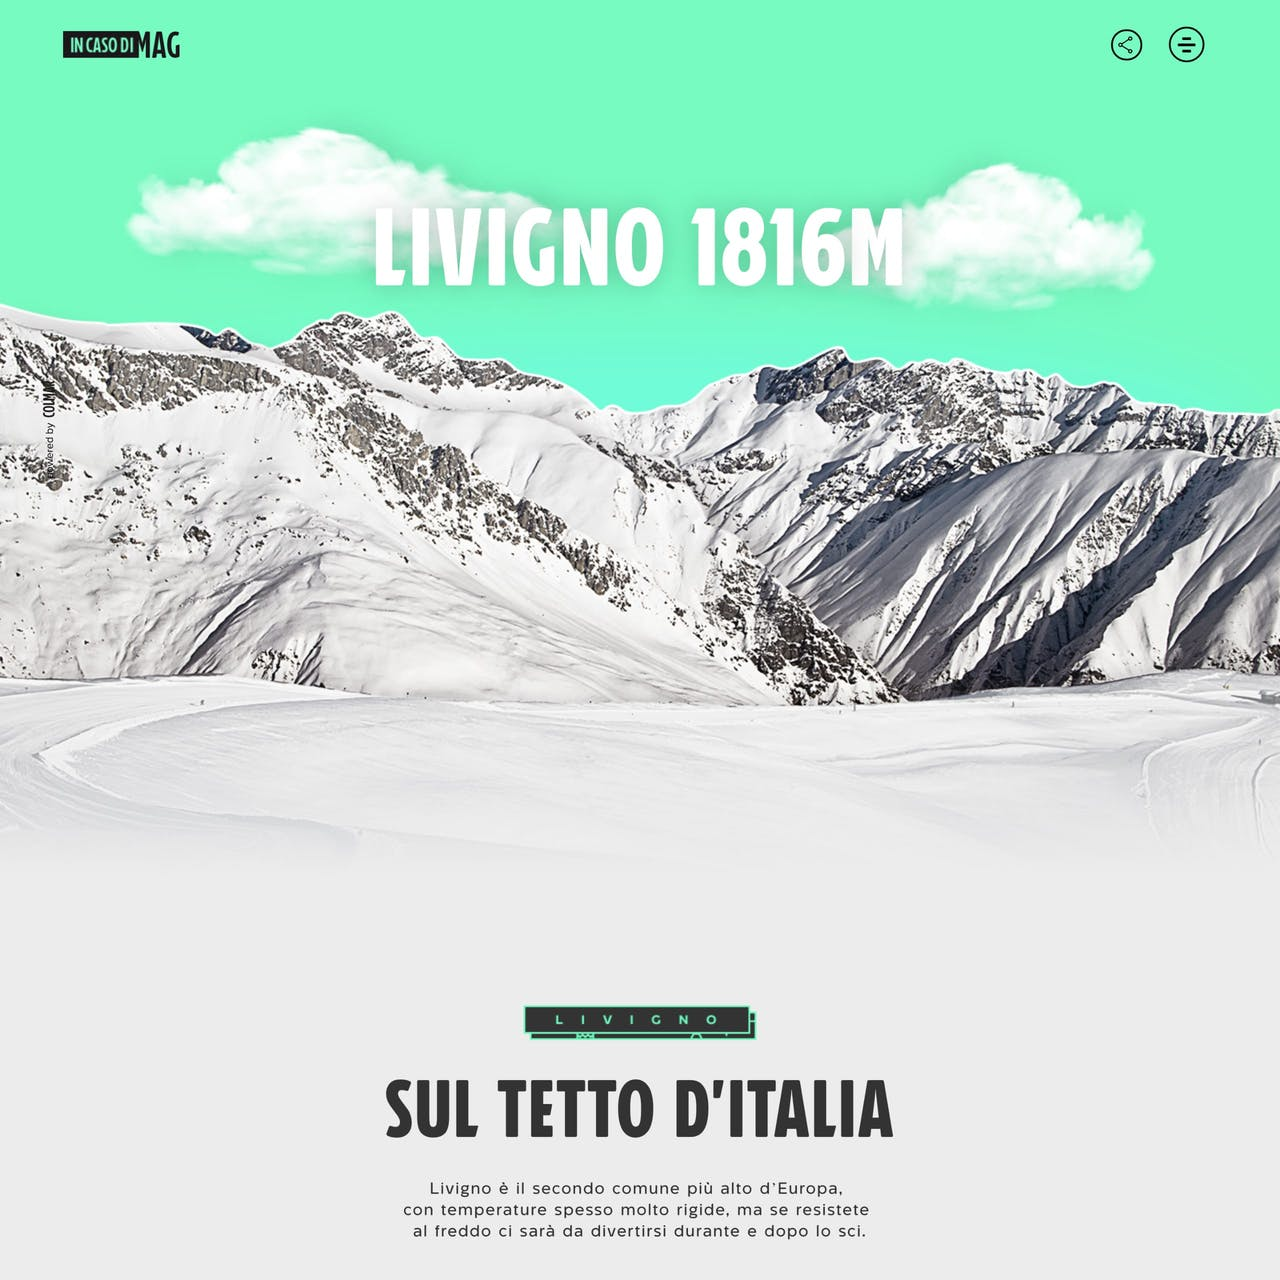 Livigno – In caso di MAG Website Screenshot